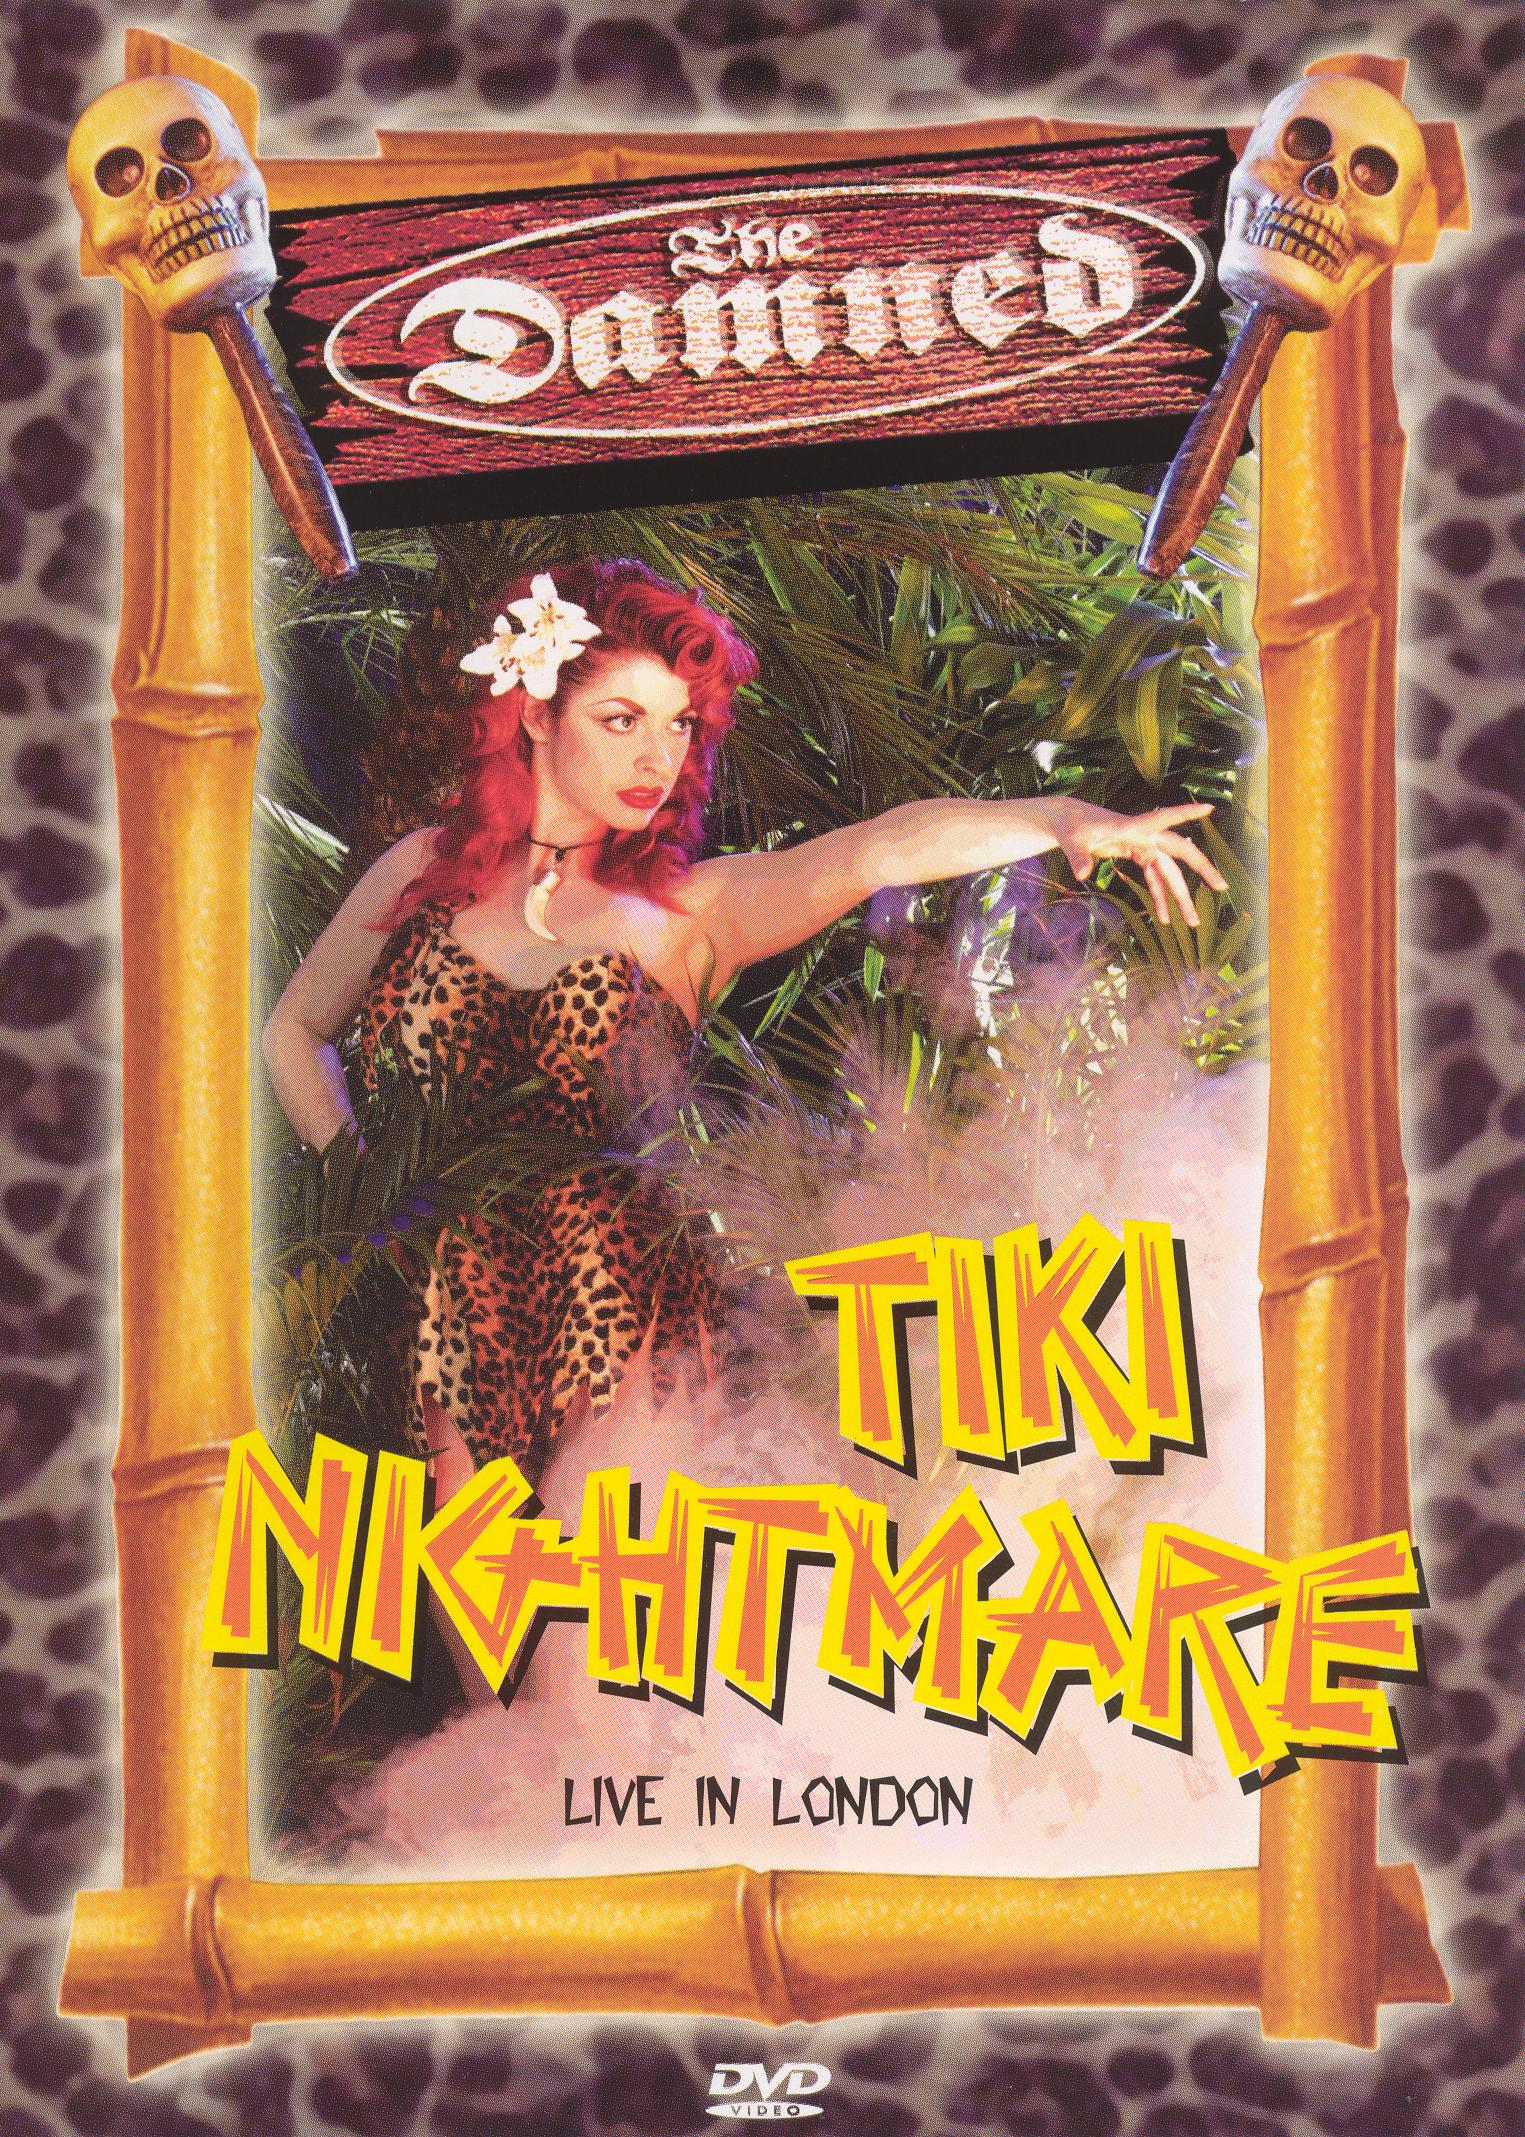 The Damned: Tiki Nightmare - Live in London